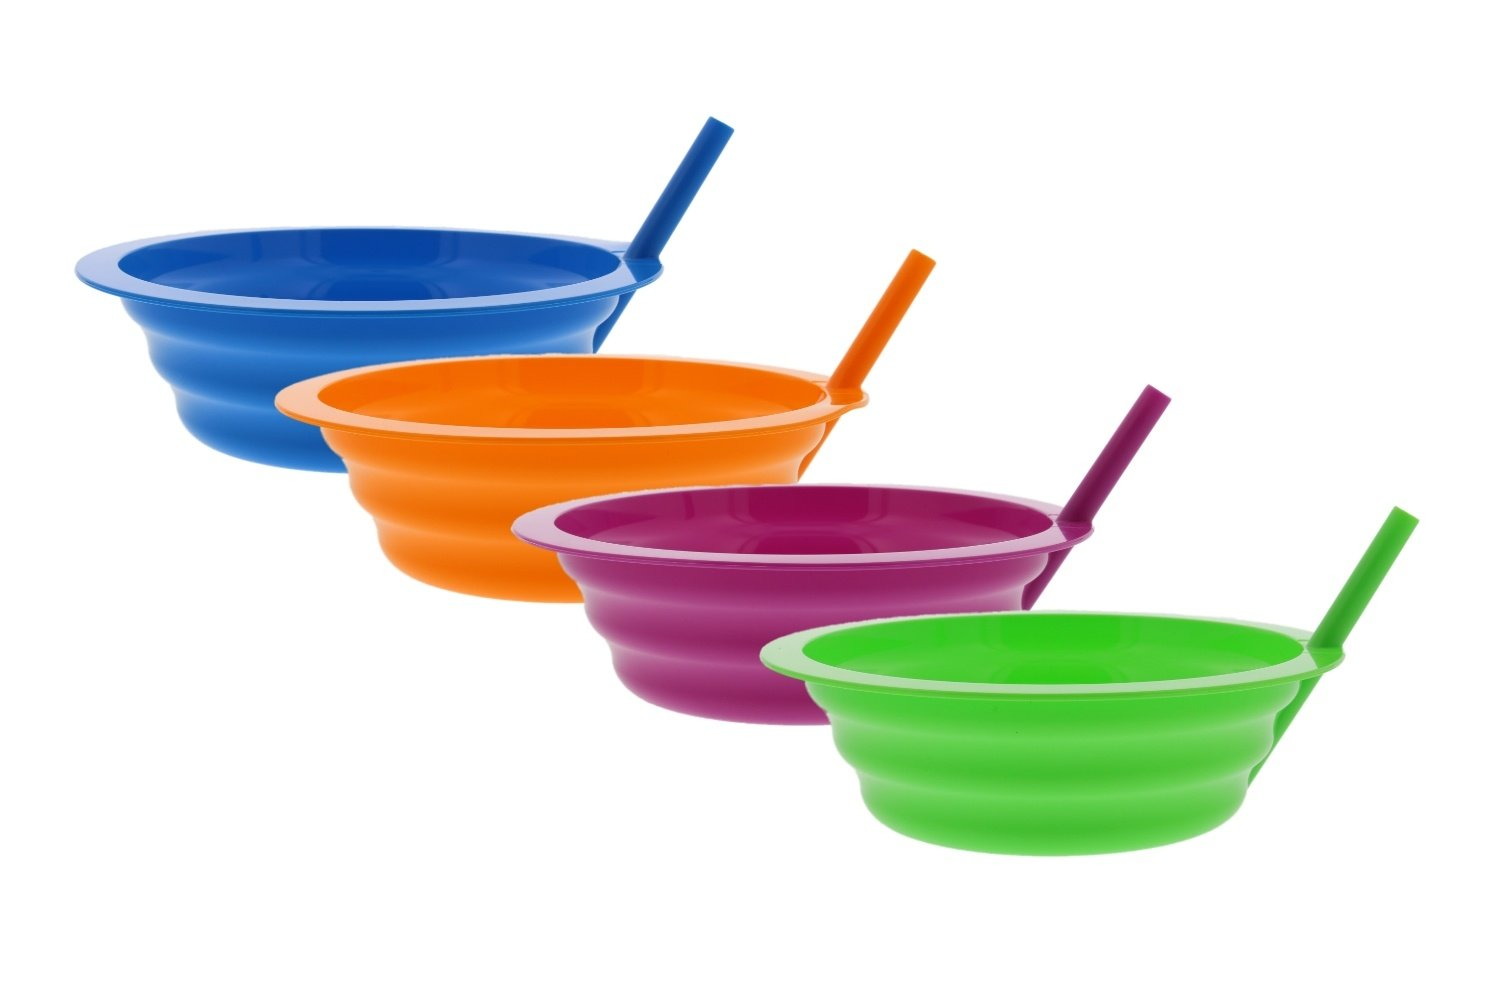 Arrow Sip-A-Bowl With Built In Straw, 22 oz, Blue, Purple,Green, Orange (4 Pack)